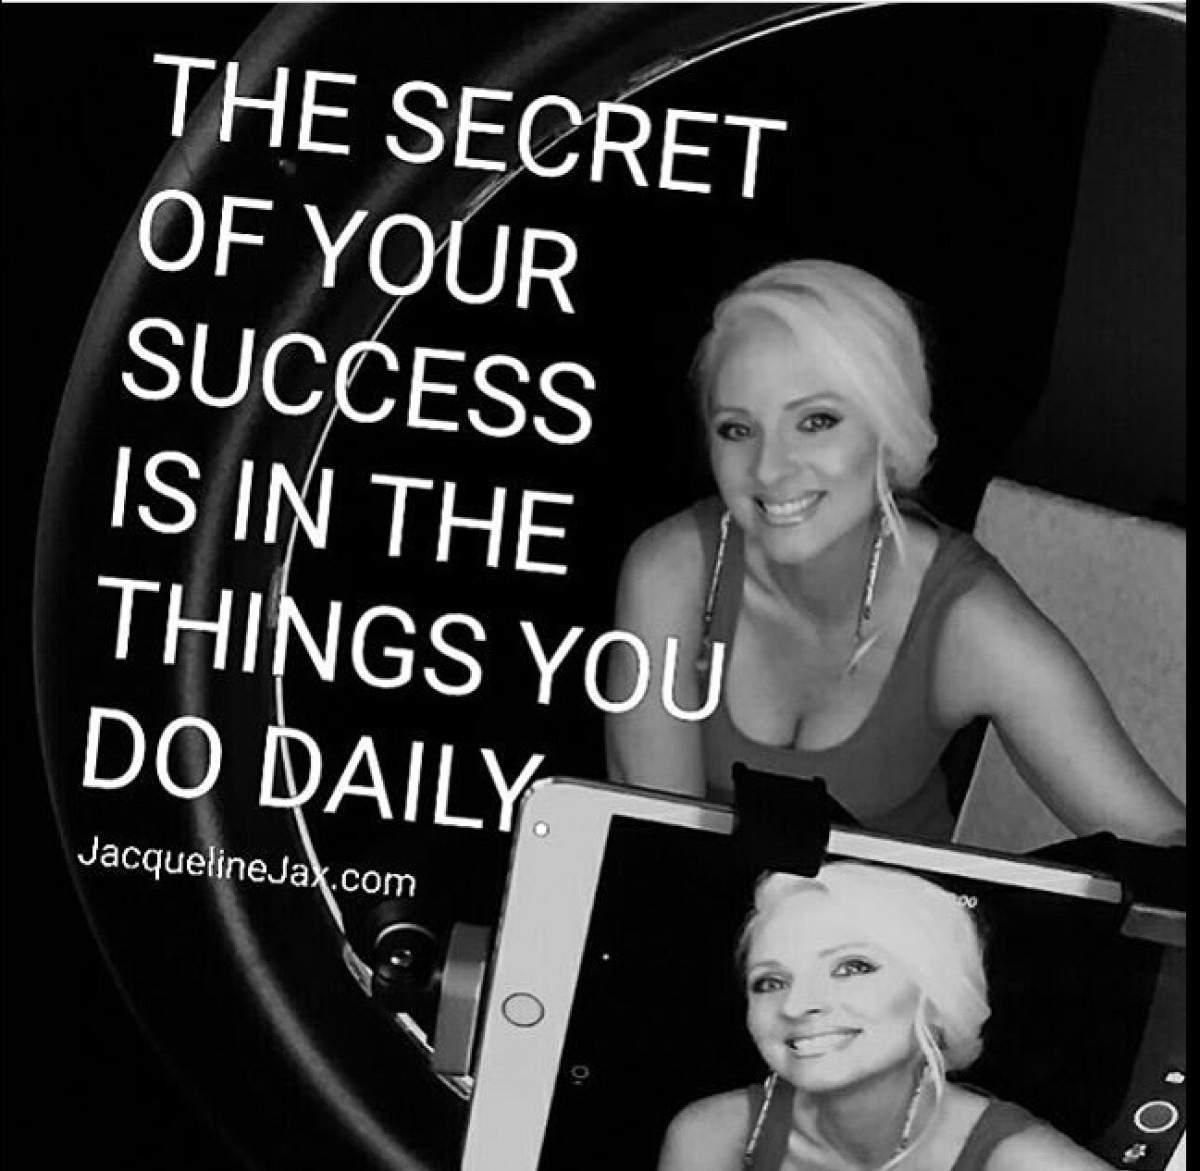 The secret of your success is in the things you do daily